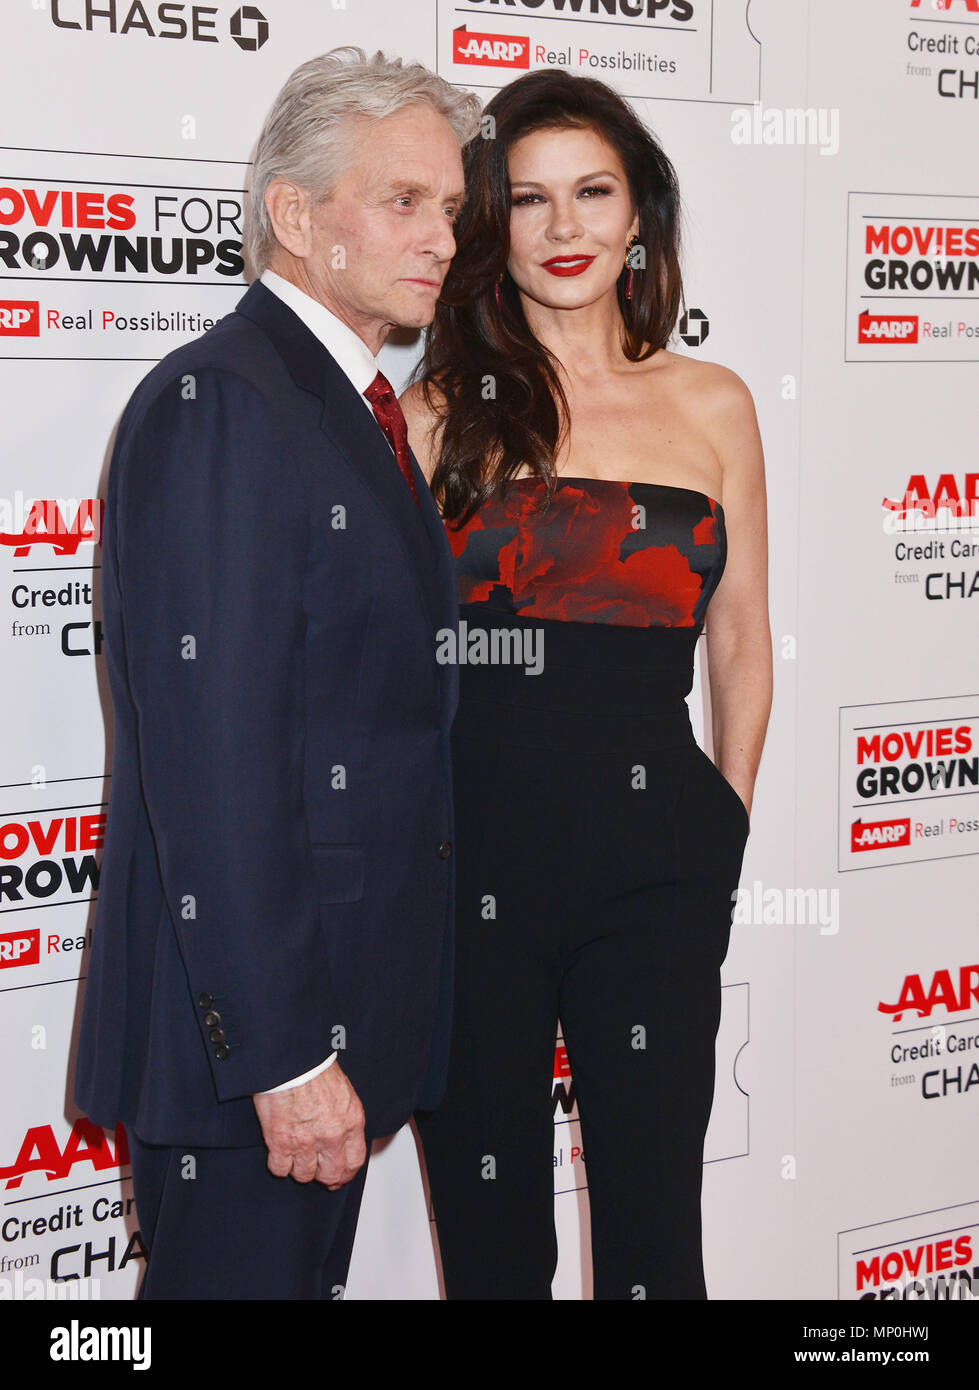 Michael Douglas, Catherine Zeta Jones 016 at the Movies For Grow Ups - AARP - at the Beverly Wilshire Hotel in Los Angeles. February 8, 2016.Michael Douglas, Catherine Zeta Jones 016 ------------- Red Carpet Event, Vertical, USA, Film Industry, Celebrities,  Photography, Bestof, Arts Culture and Entertainment, Topix Celebrities fashion /  Vertical, Best of, Event in Hollywood Life - California,  Red Carpet and backstage, USA, Film Industry, Celebrities,  movie celebrities, TV celebrities, Music celebrities, Photography, Bestof, Arts Culture and Entertainment,  Topix, vertical,  family from fro - Stock Image